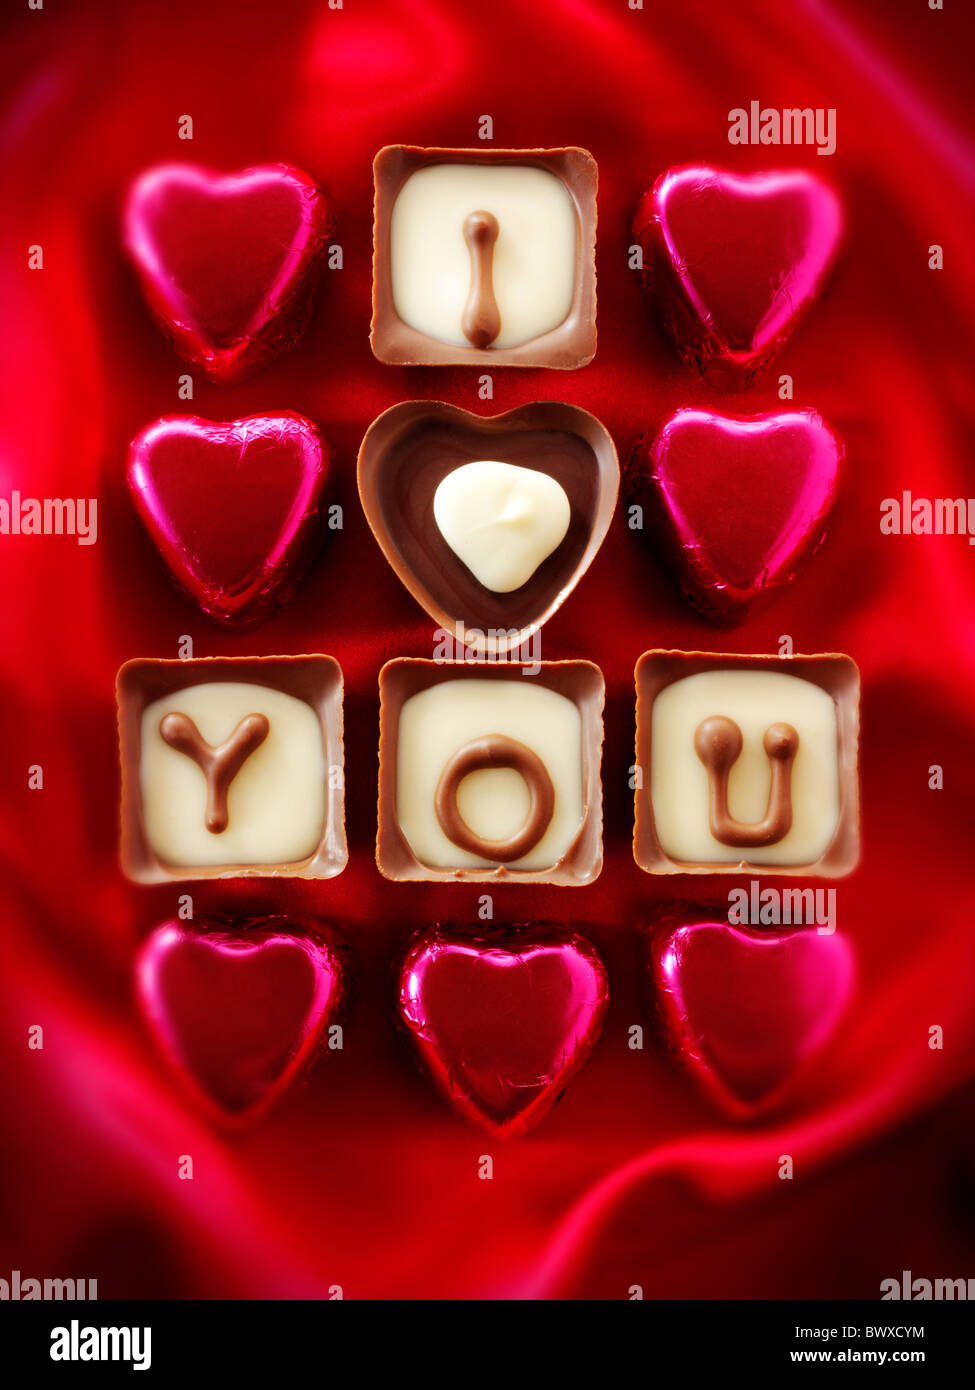 'I Love You' Valentines or Mothers Day Chocolates - Stock Image